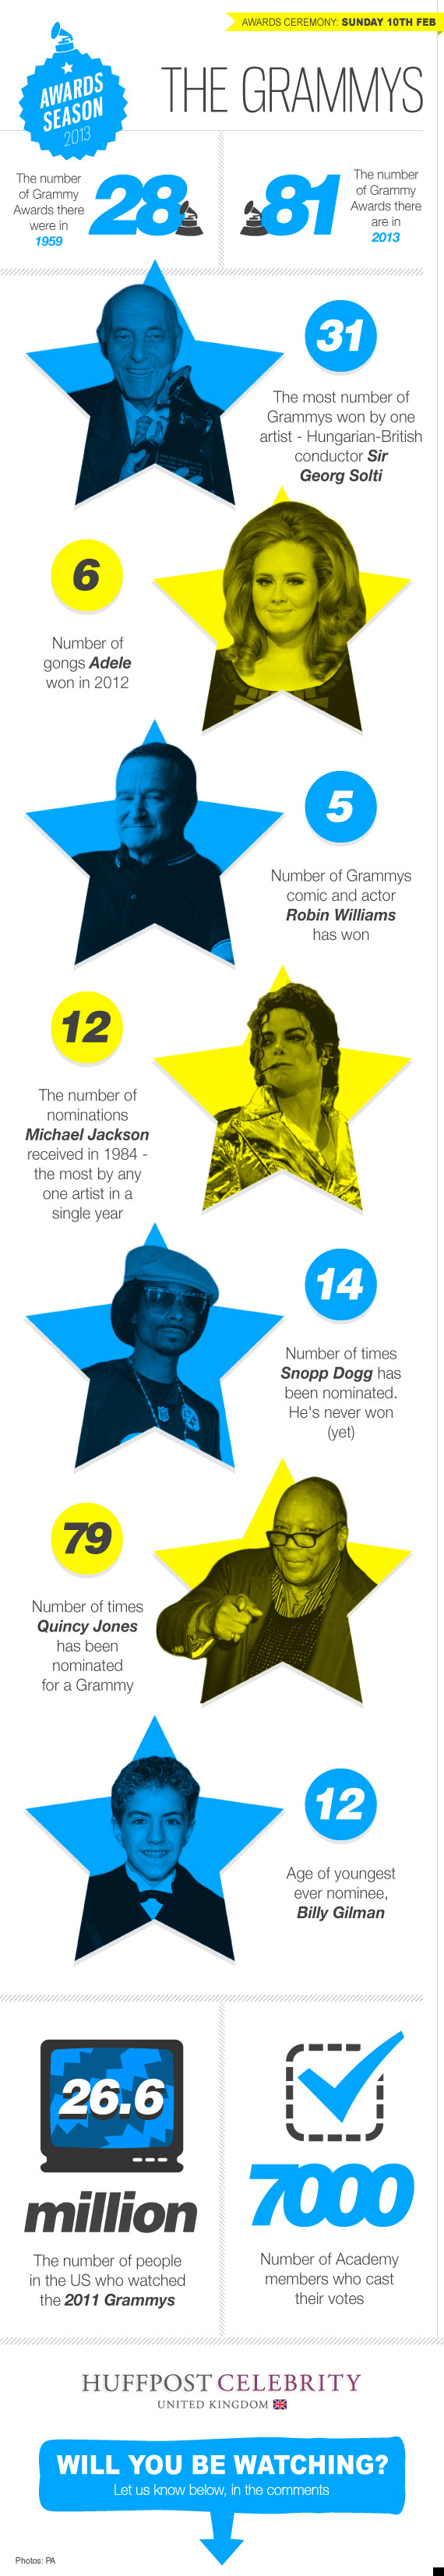 grammy awards 2013 infographic